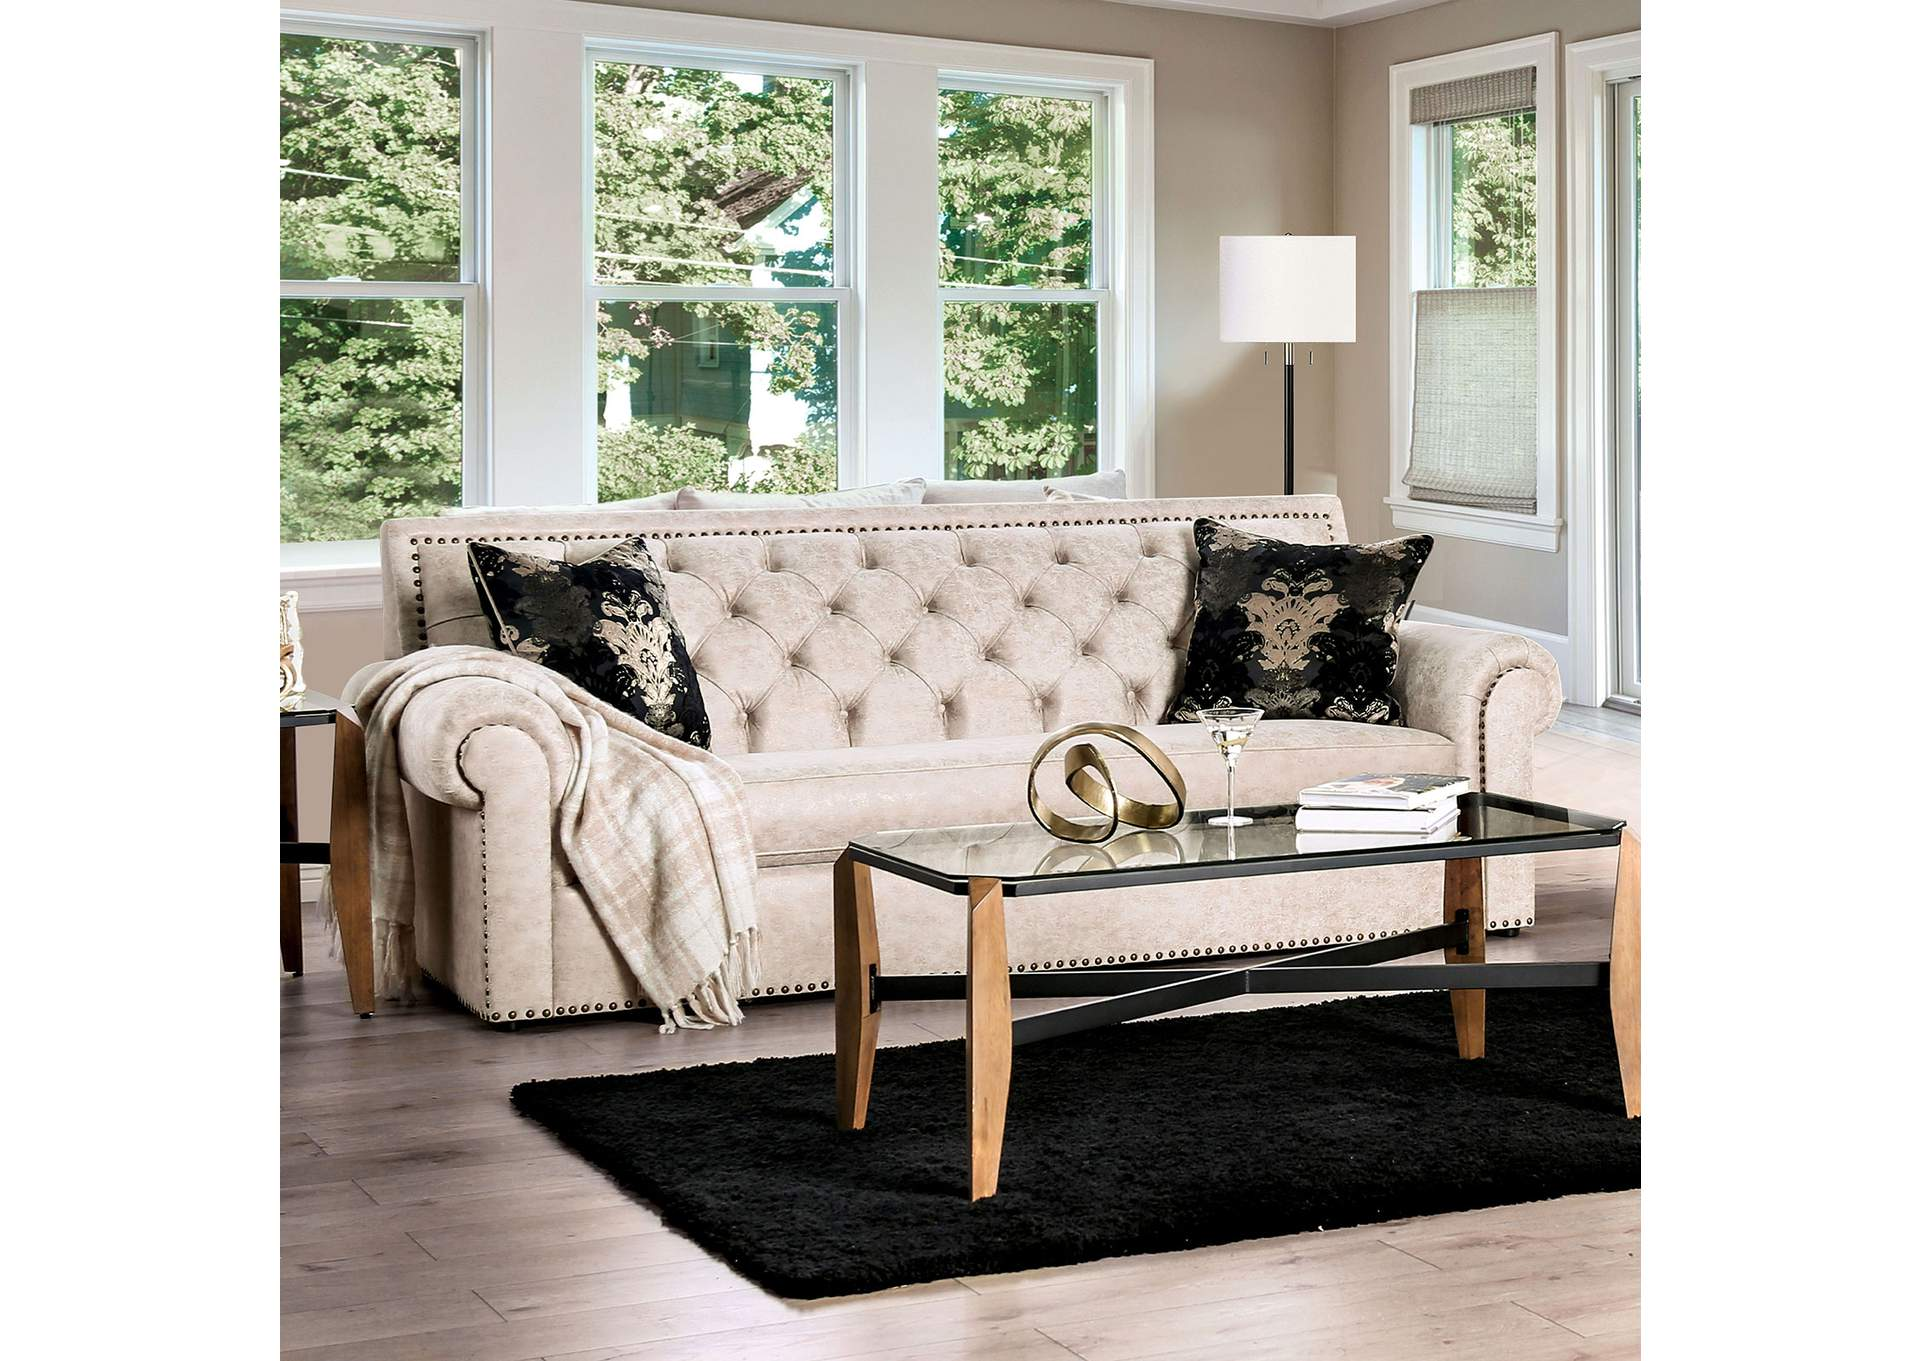 Parshall Beige Sofa,Furniture of America